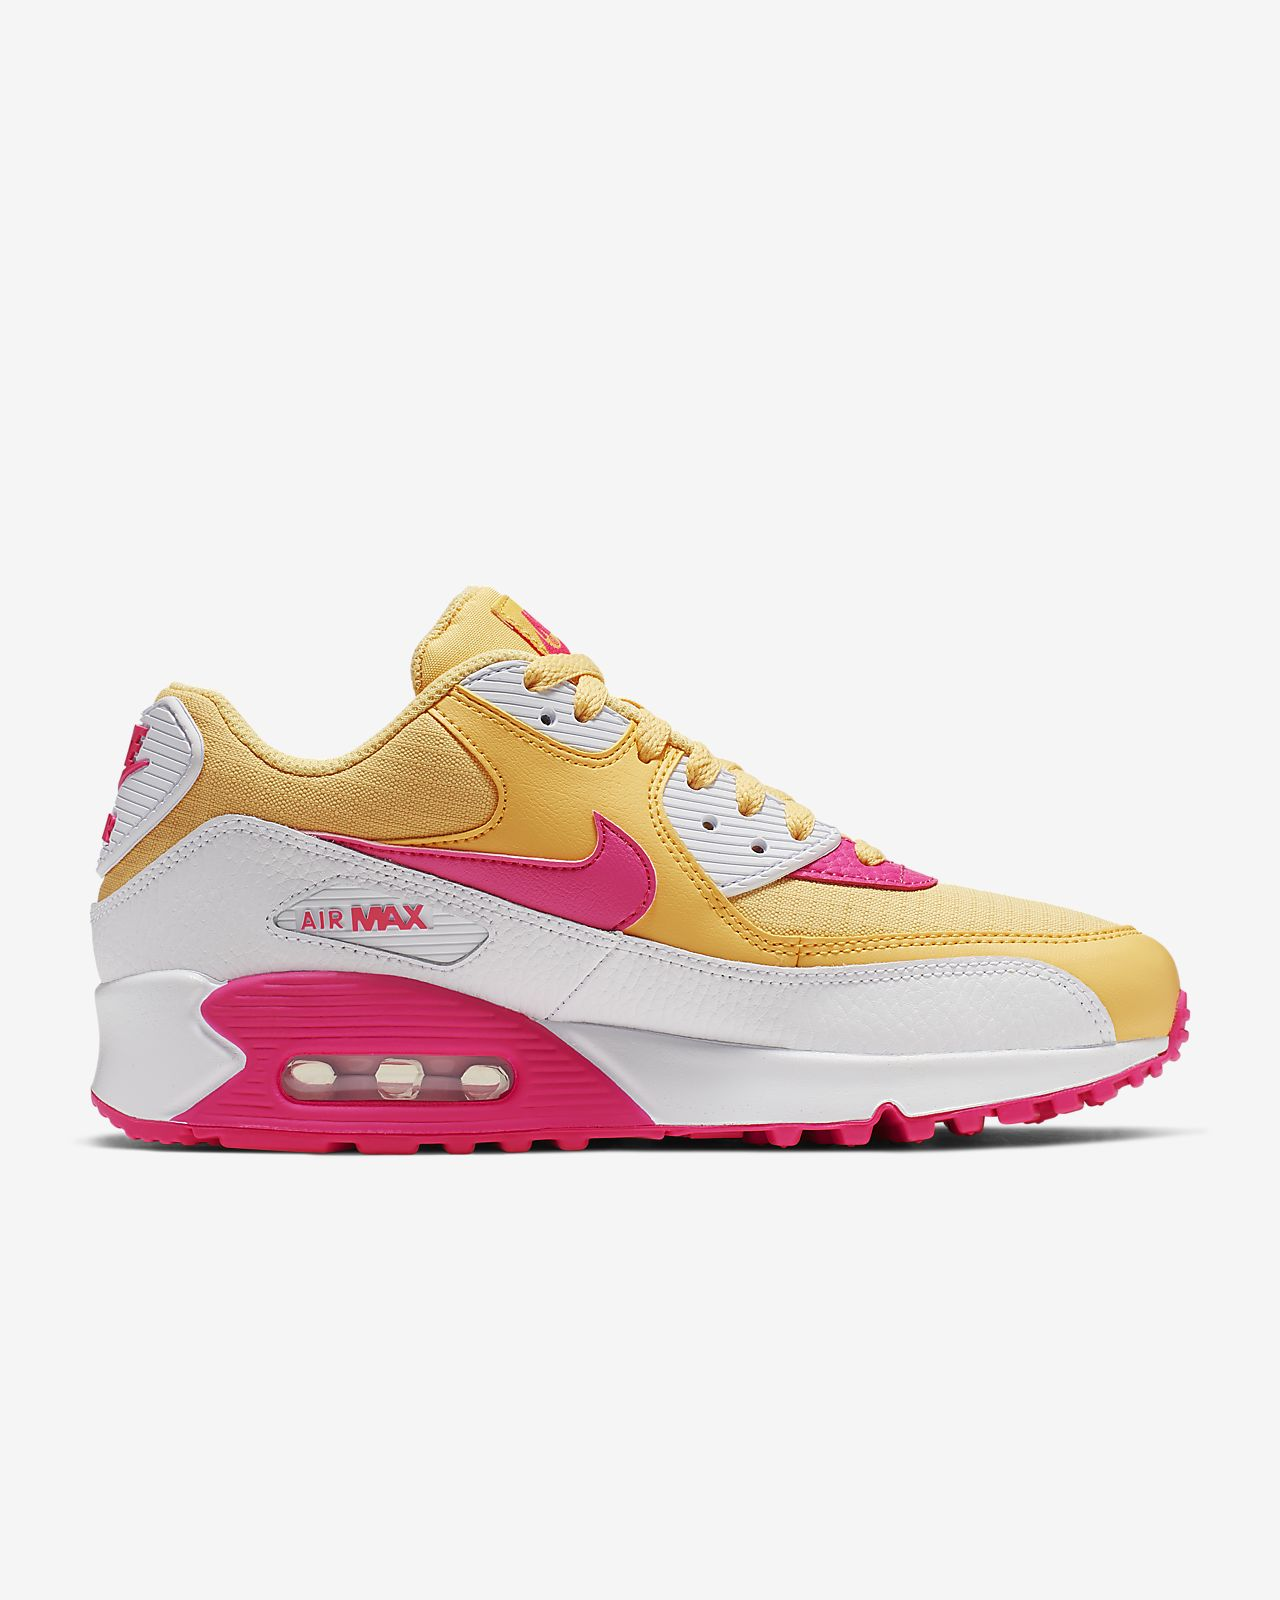 new style 77903 b870d ... Nike Air Max 90 Women s Shoe